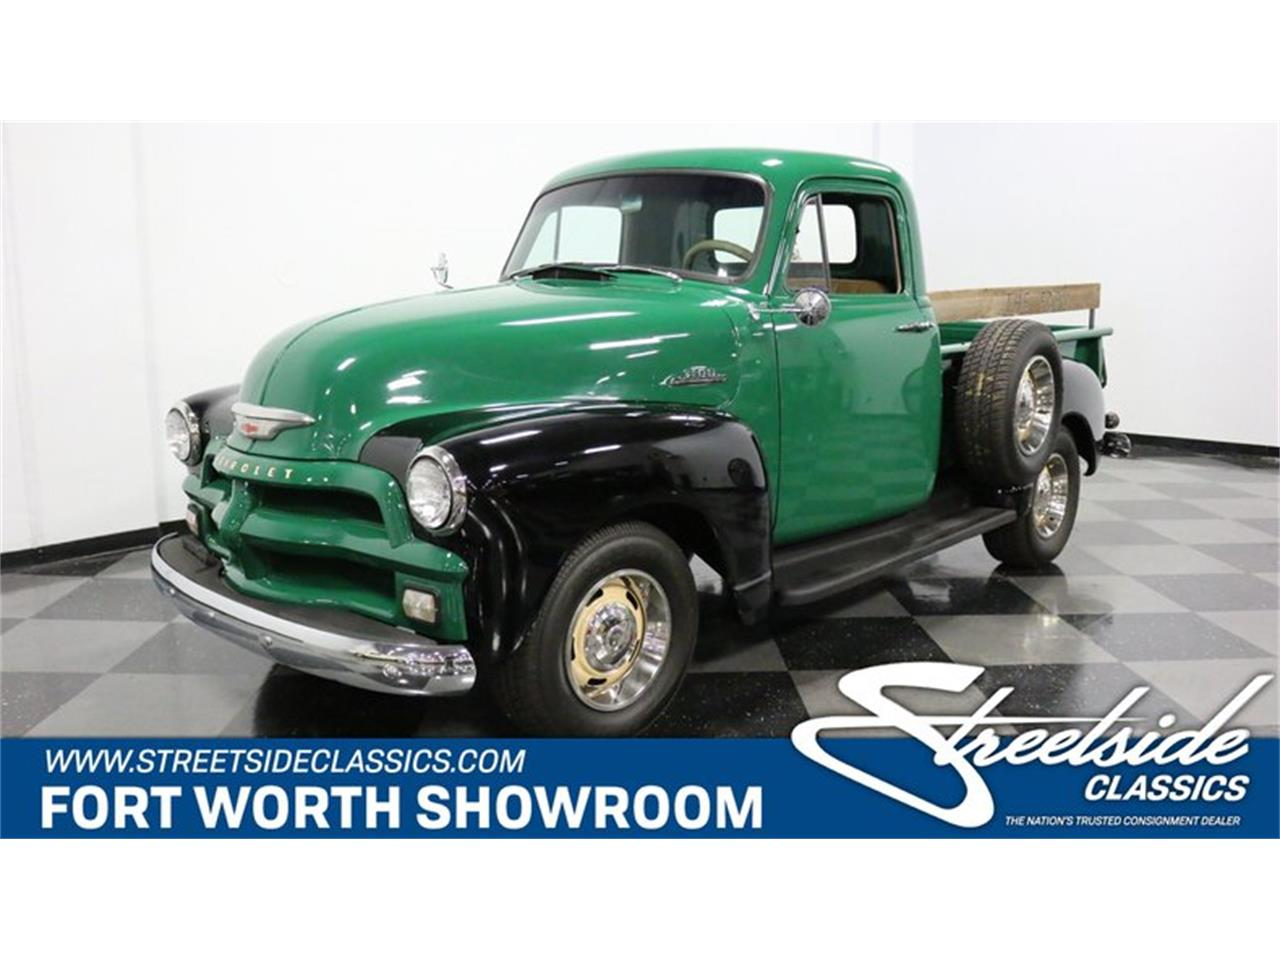 For Sale 1954 Chevrolet 3100 In Ft Worth Texas